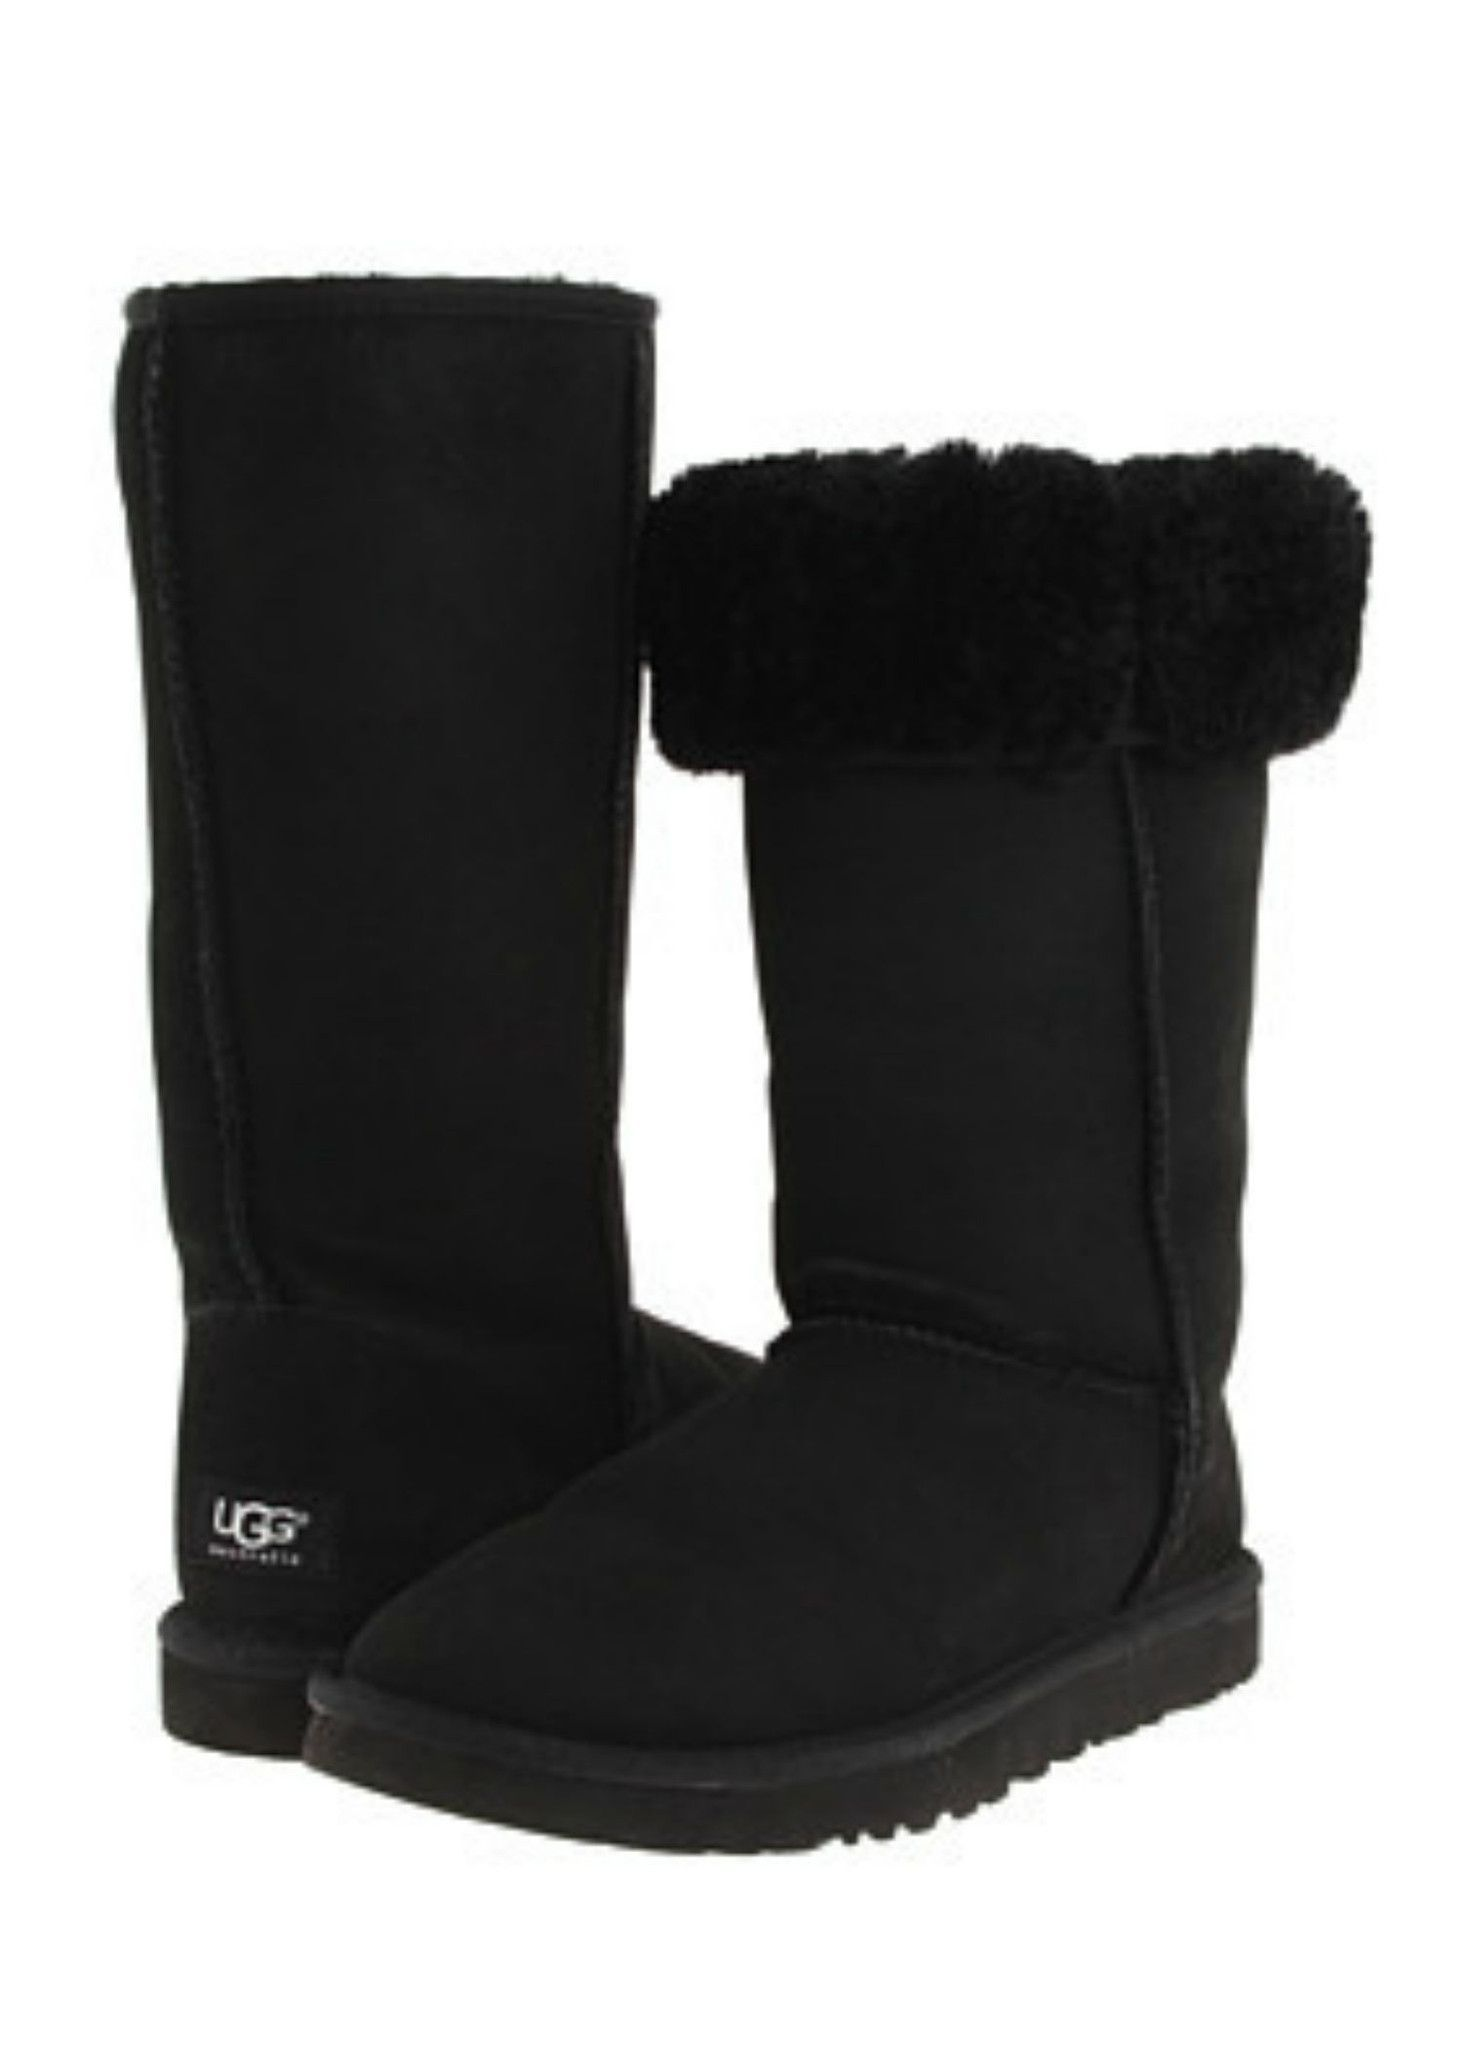 7edf21c2077 W UGG Classic Tall - Black | My lazy day outfit ideas | Ugg classic ...